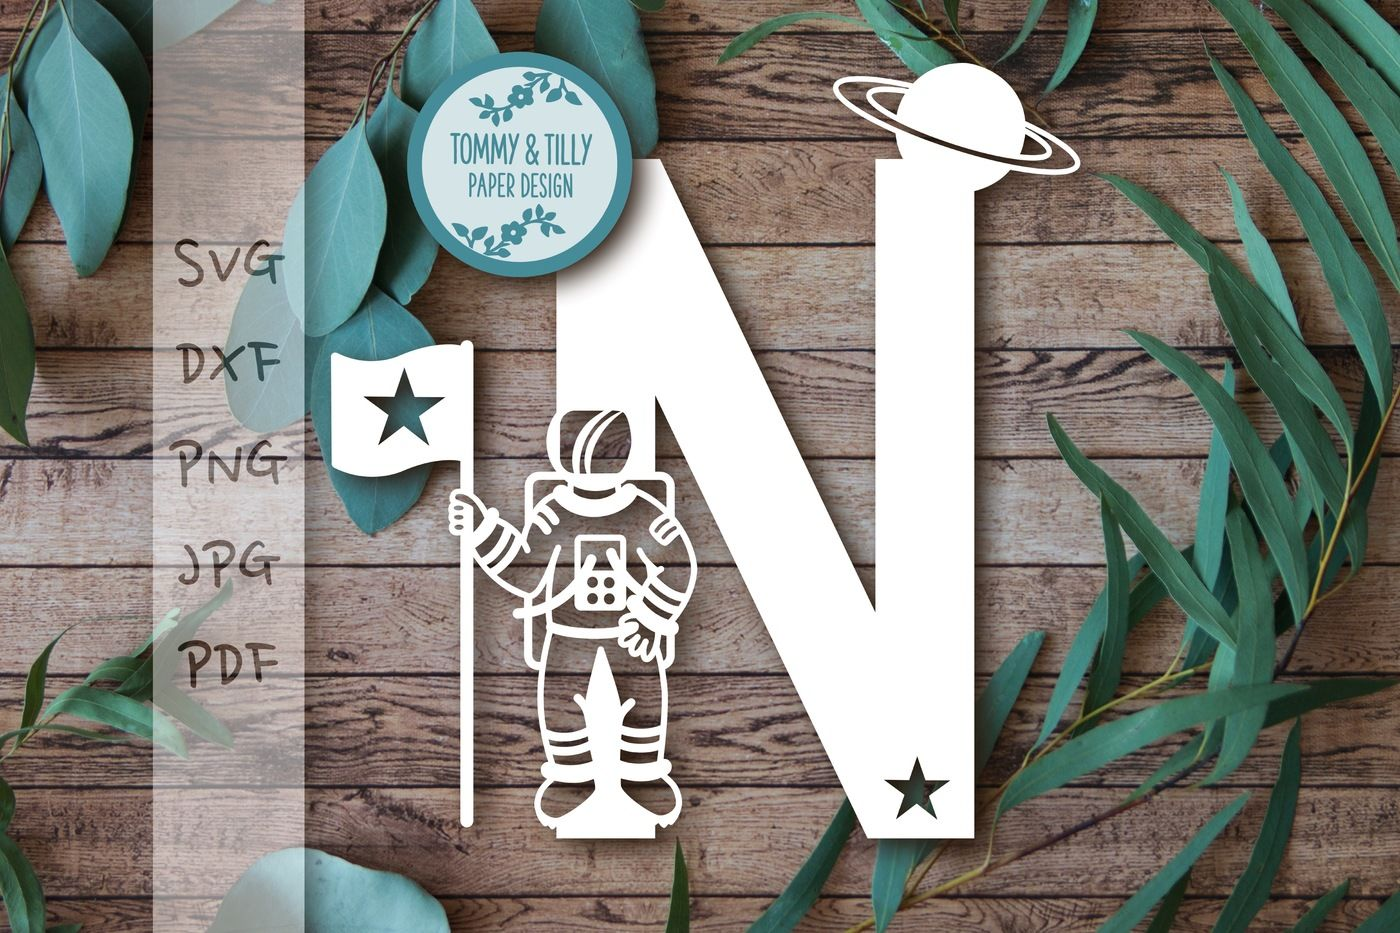 N Astronaut Letter Svg Dxf Png Pdf Jpg By Tommy And Tilly Design